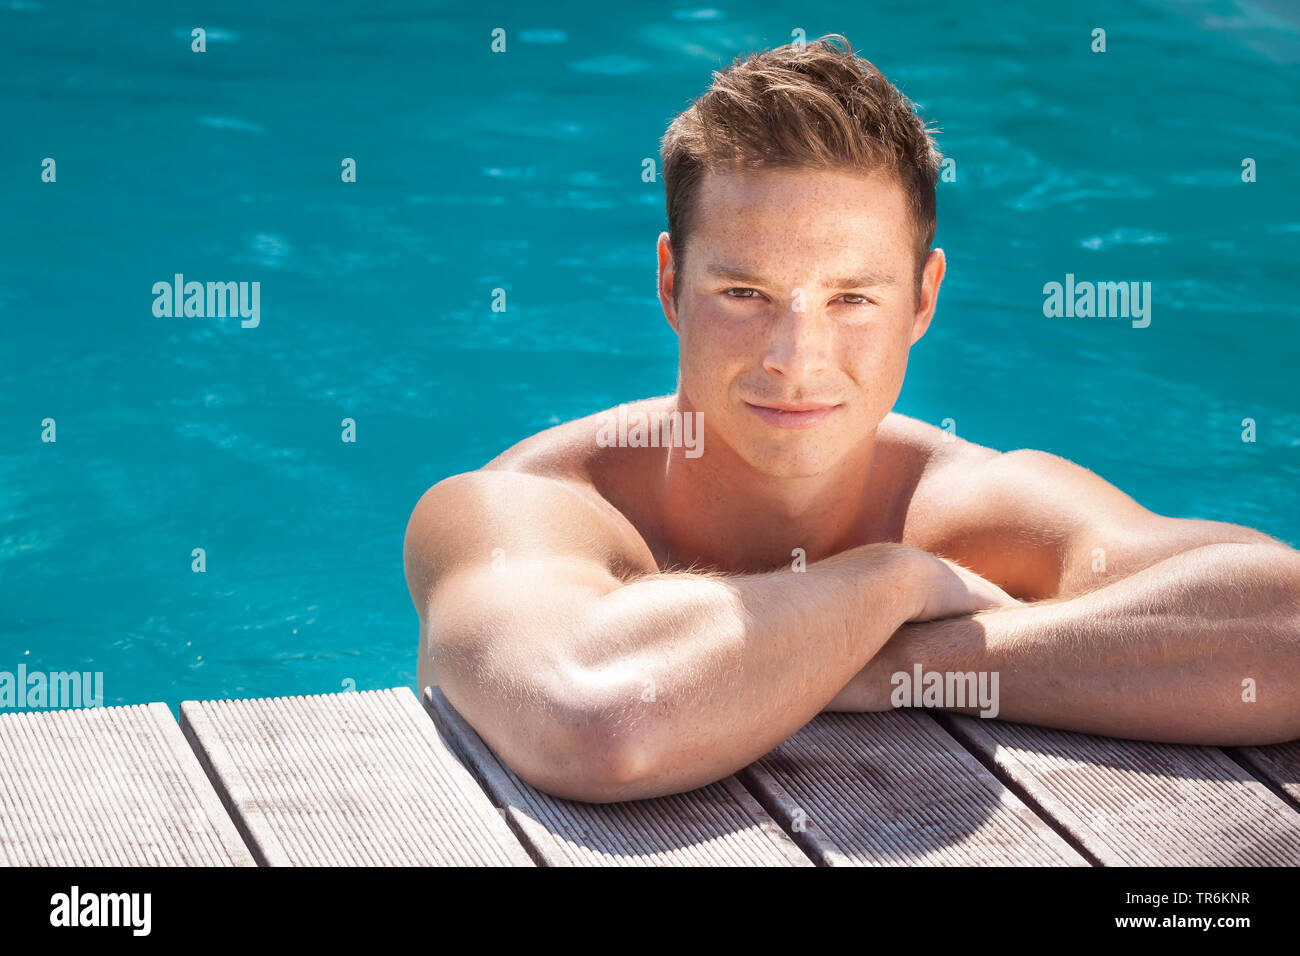 junger dunkelblonder Mann am Beckenrand eines Swimmingpools, Deutschland | young blond man in a swimming pool, Germany | BLWS486393.jpg [ (c) blickwin - Stock Image